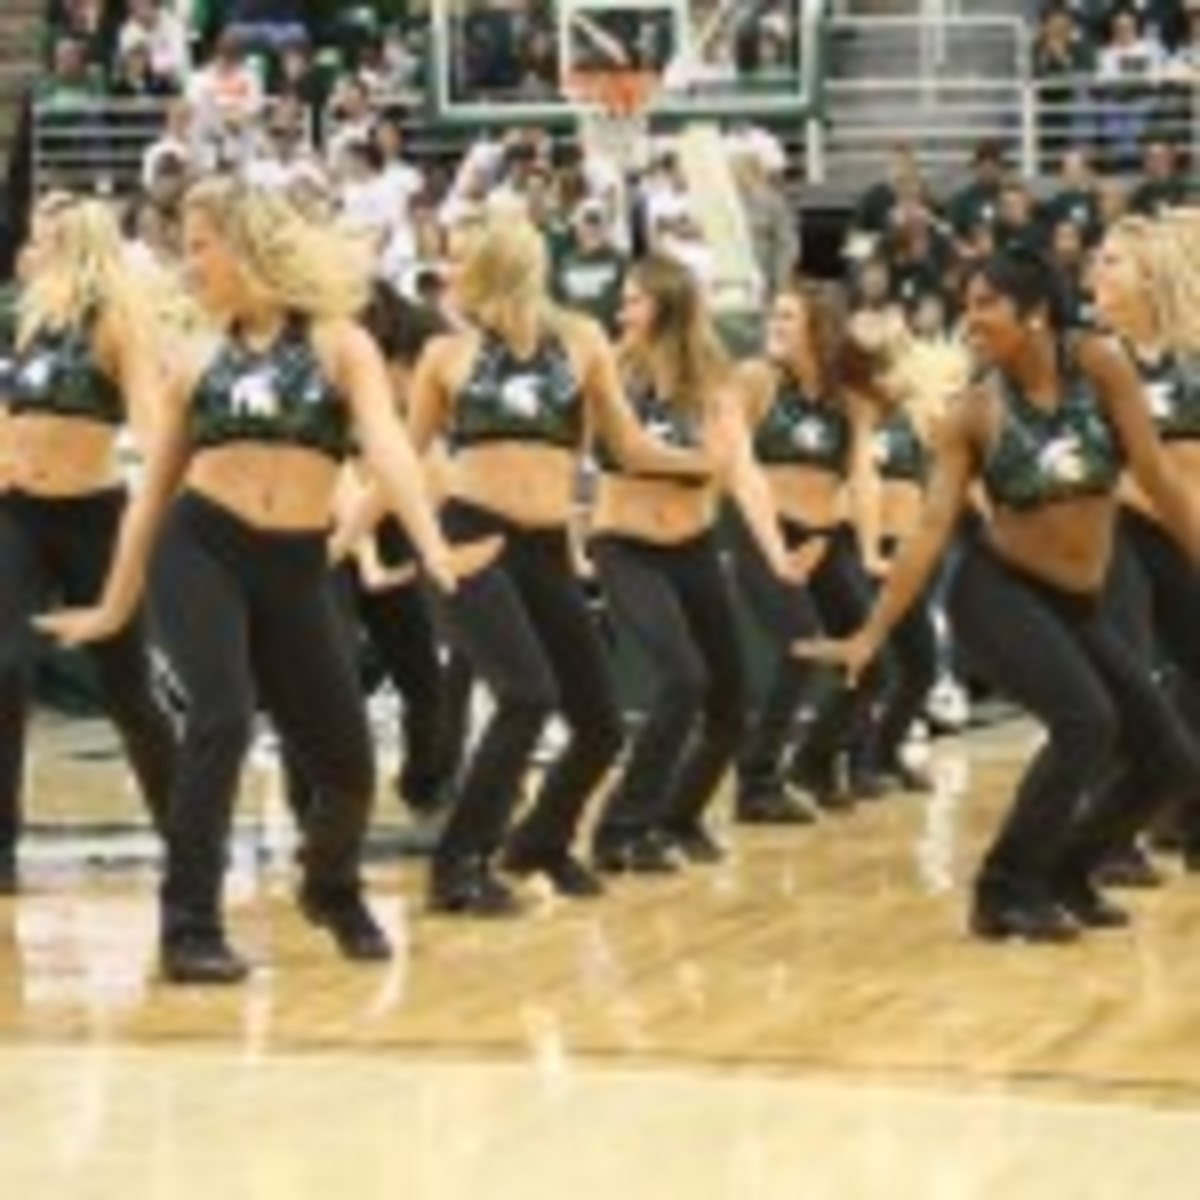 It is finally March and in the Spartan Nation that means stand up and get ready. Photo courtesy of Mark Boomgaard.